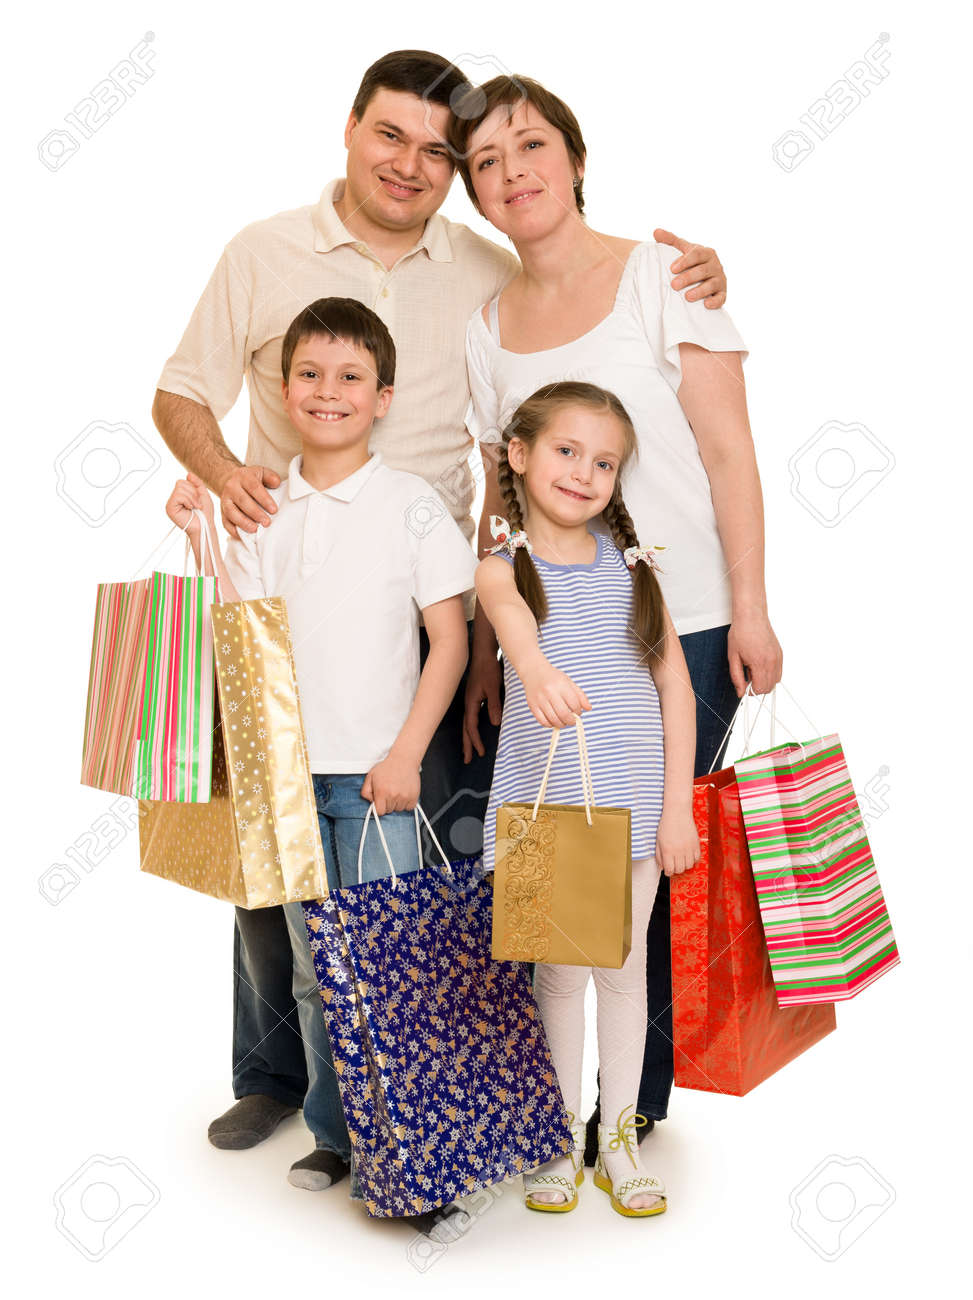 Happy Family With Shopping Bag Stock Photo, Picture And Royalty ...